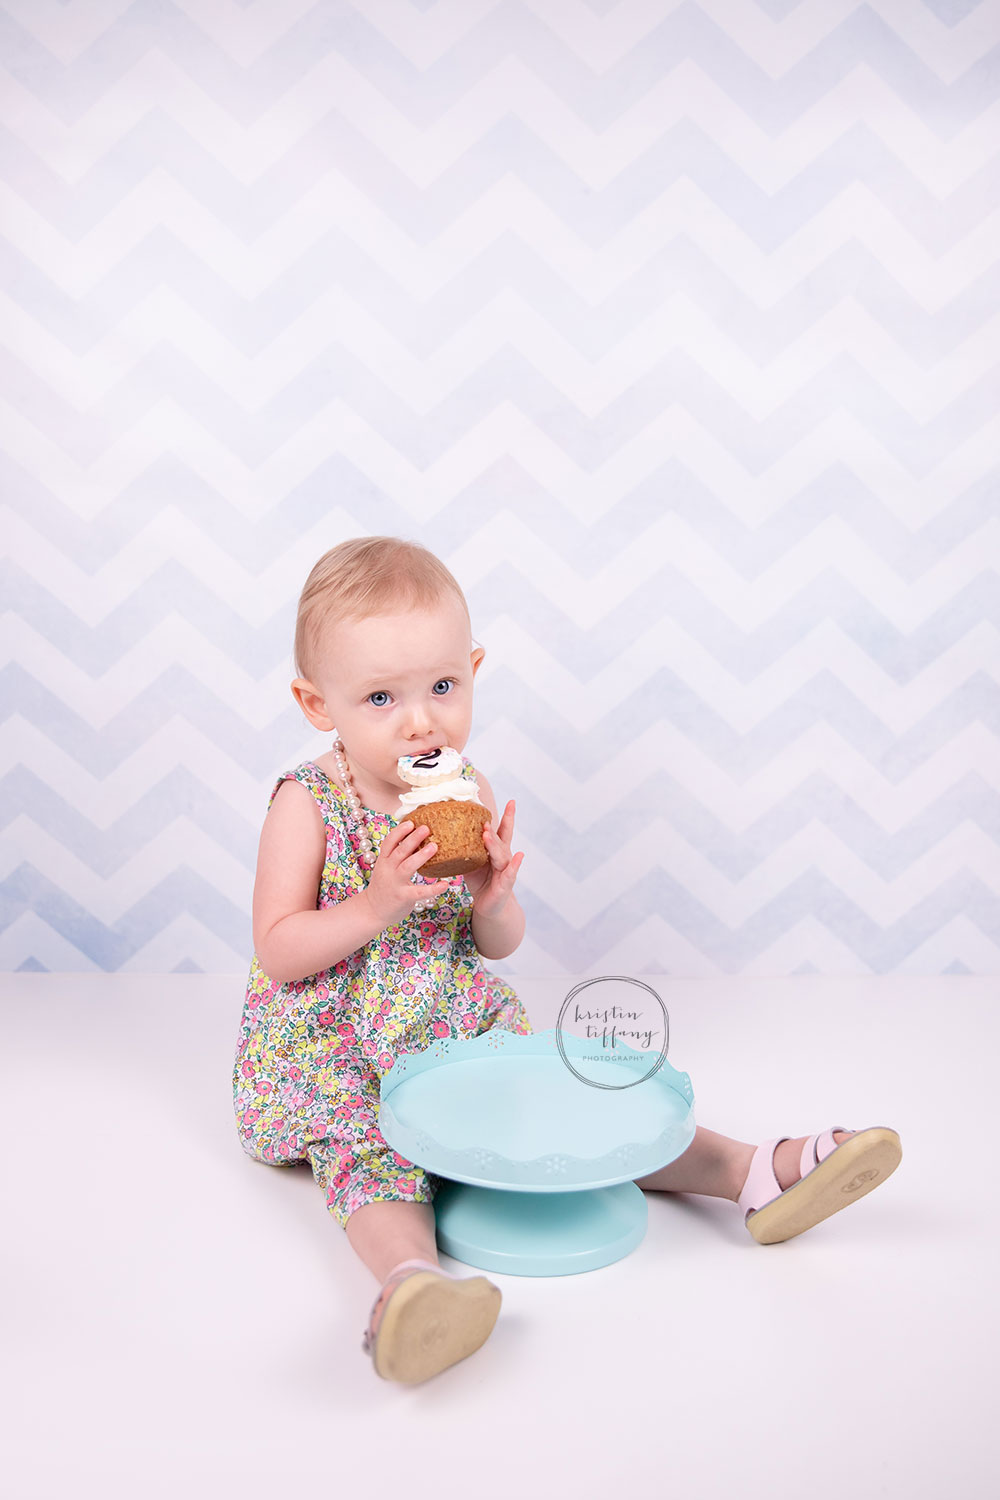 a photo of a baby girl eating a cupcake at a photoshoot